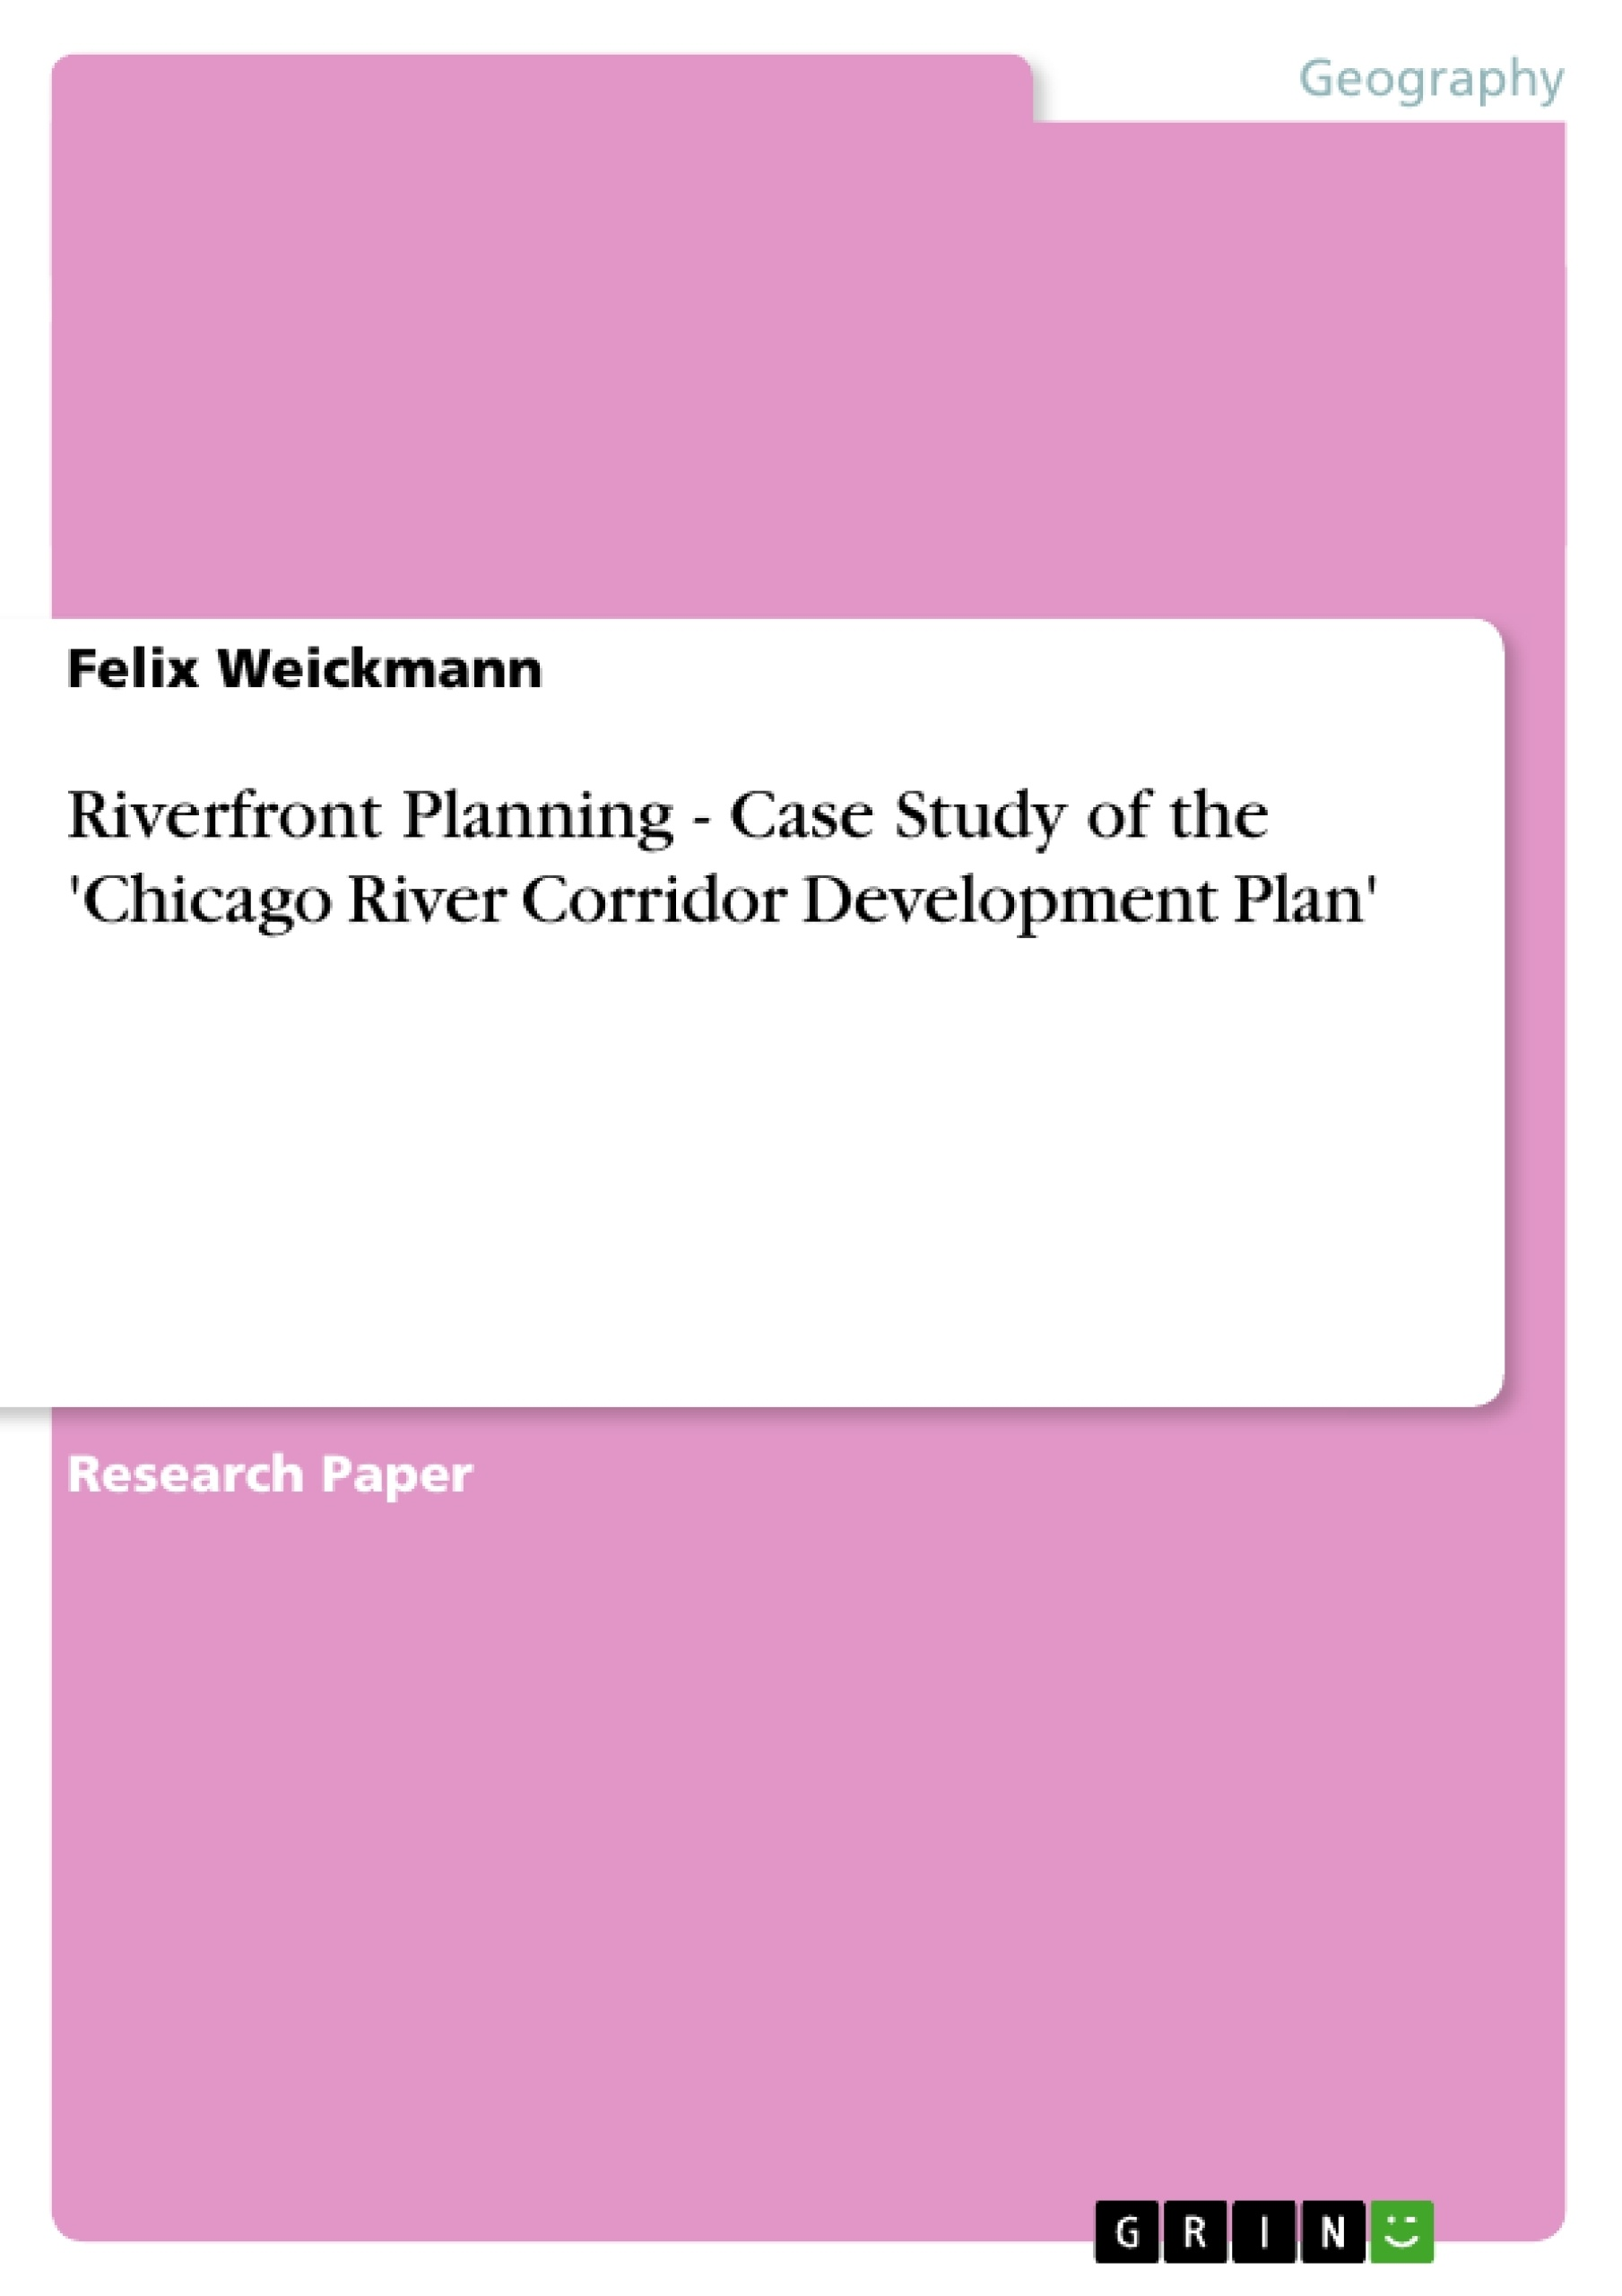 Title: Riverfront Planning - Case Study of the 'Chicago River Corridor Development Plan'